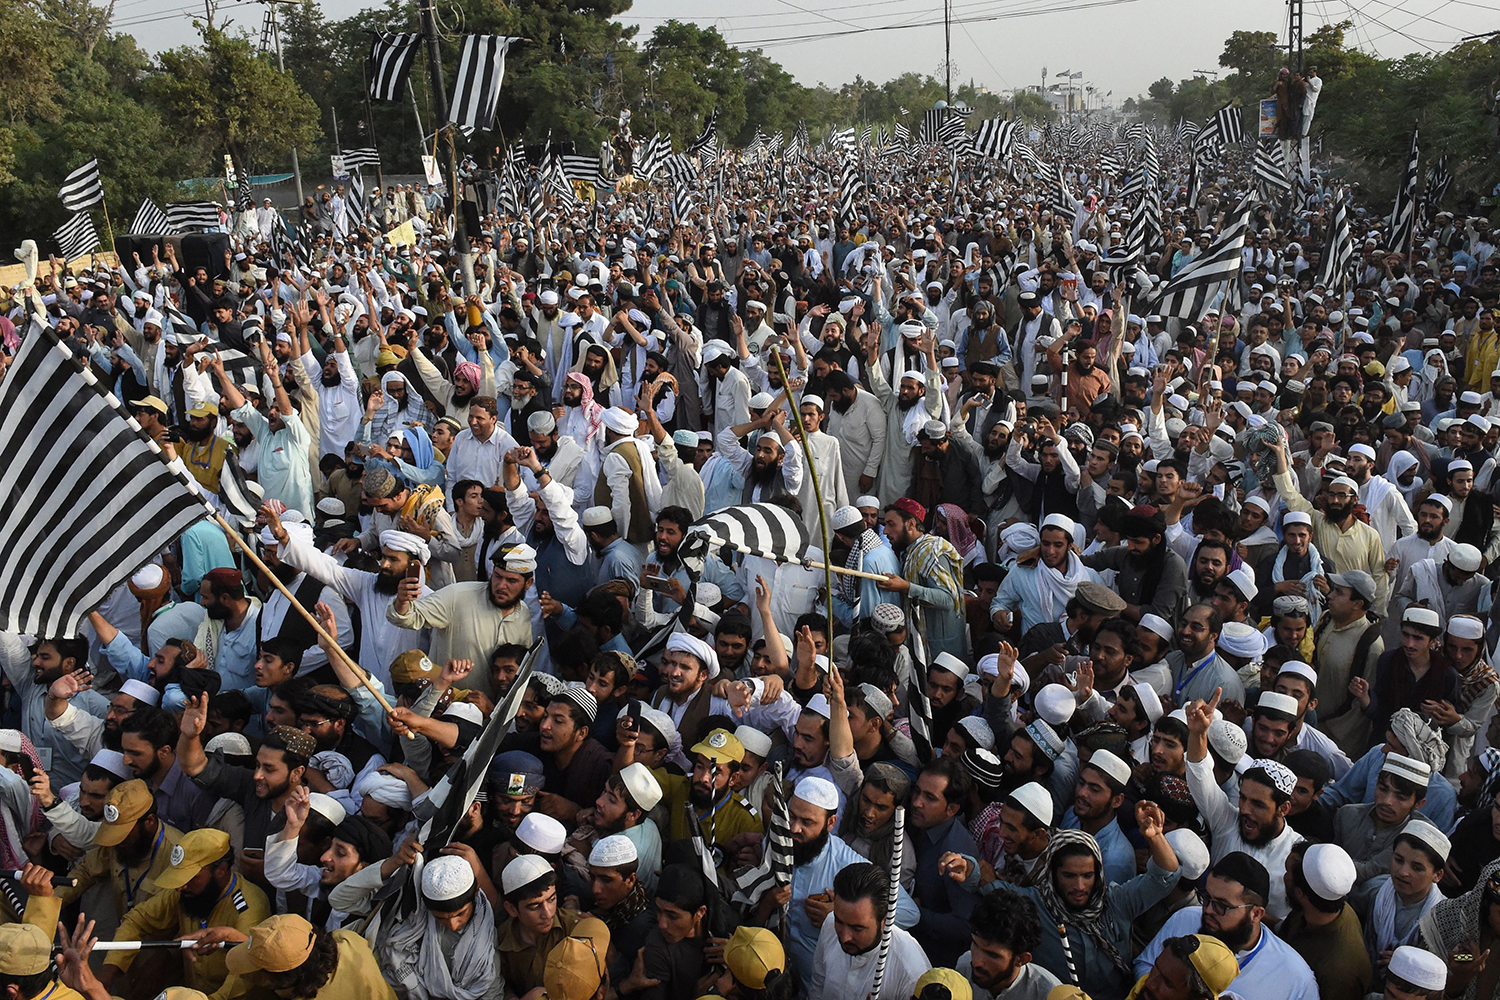 Supporters of the Jamiat Ulma-e-Islam political party wave flags during an anti-government rally in Quetta, Pakistan, on July 28. The prime minister faces growing anger by opposition parties which accuse his government of being responsible for the teetering economy, running inflation, and unemployment in the country. BANARAS KHAN/AFP/Getty Images